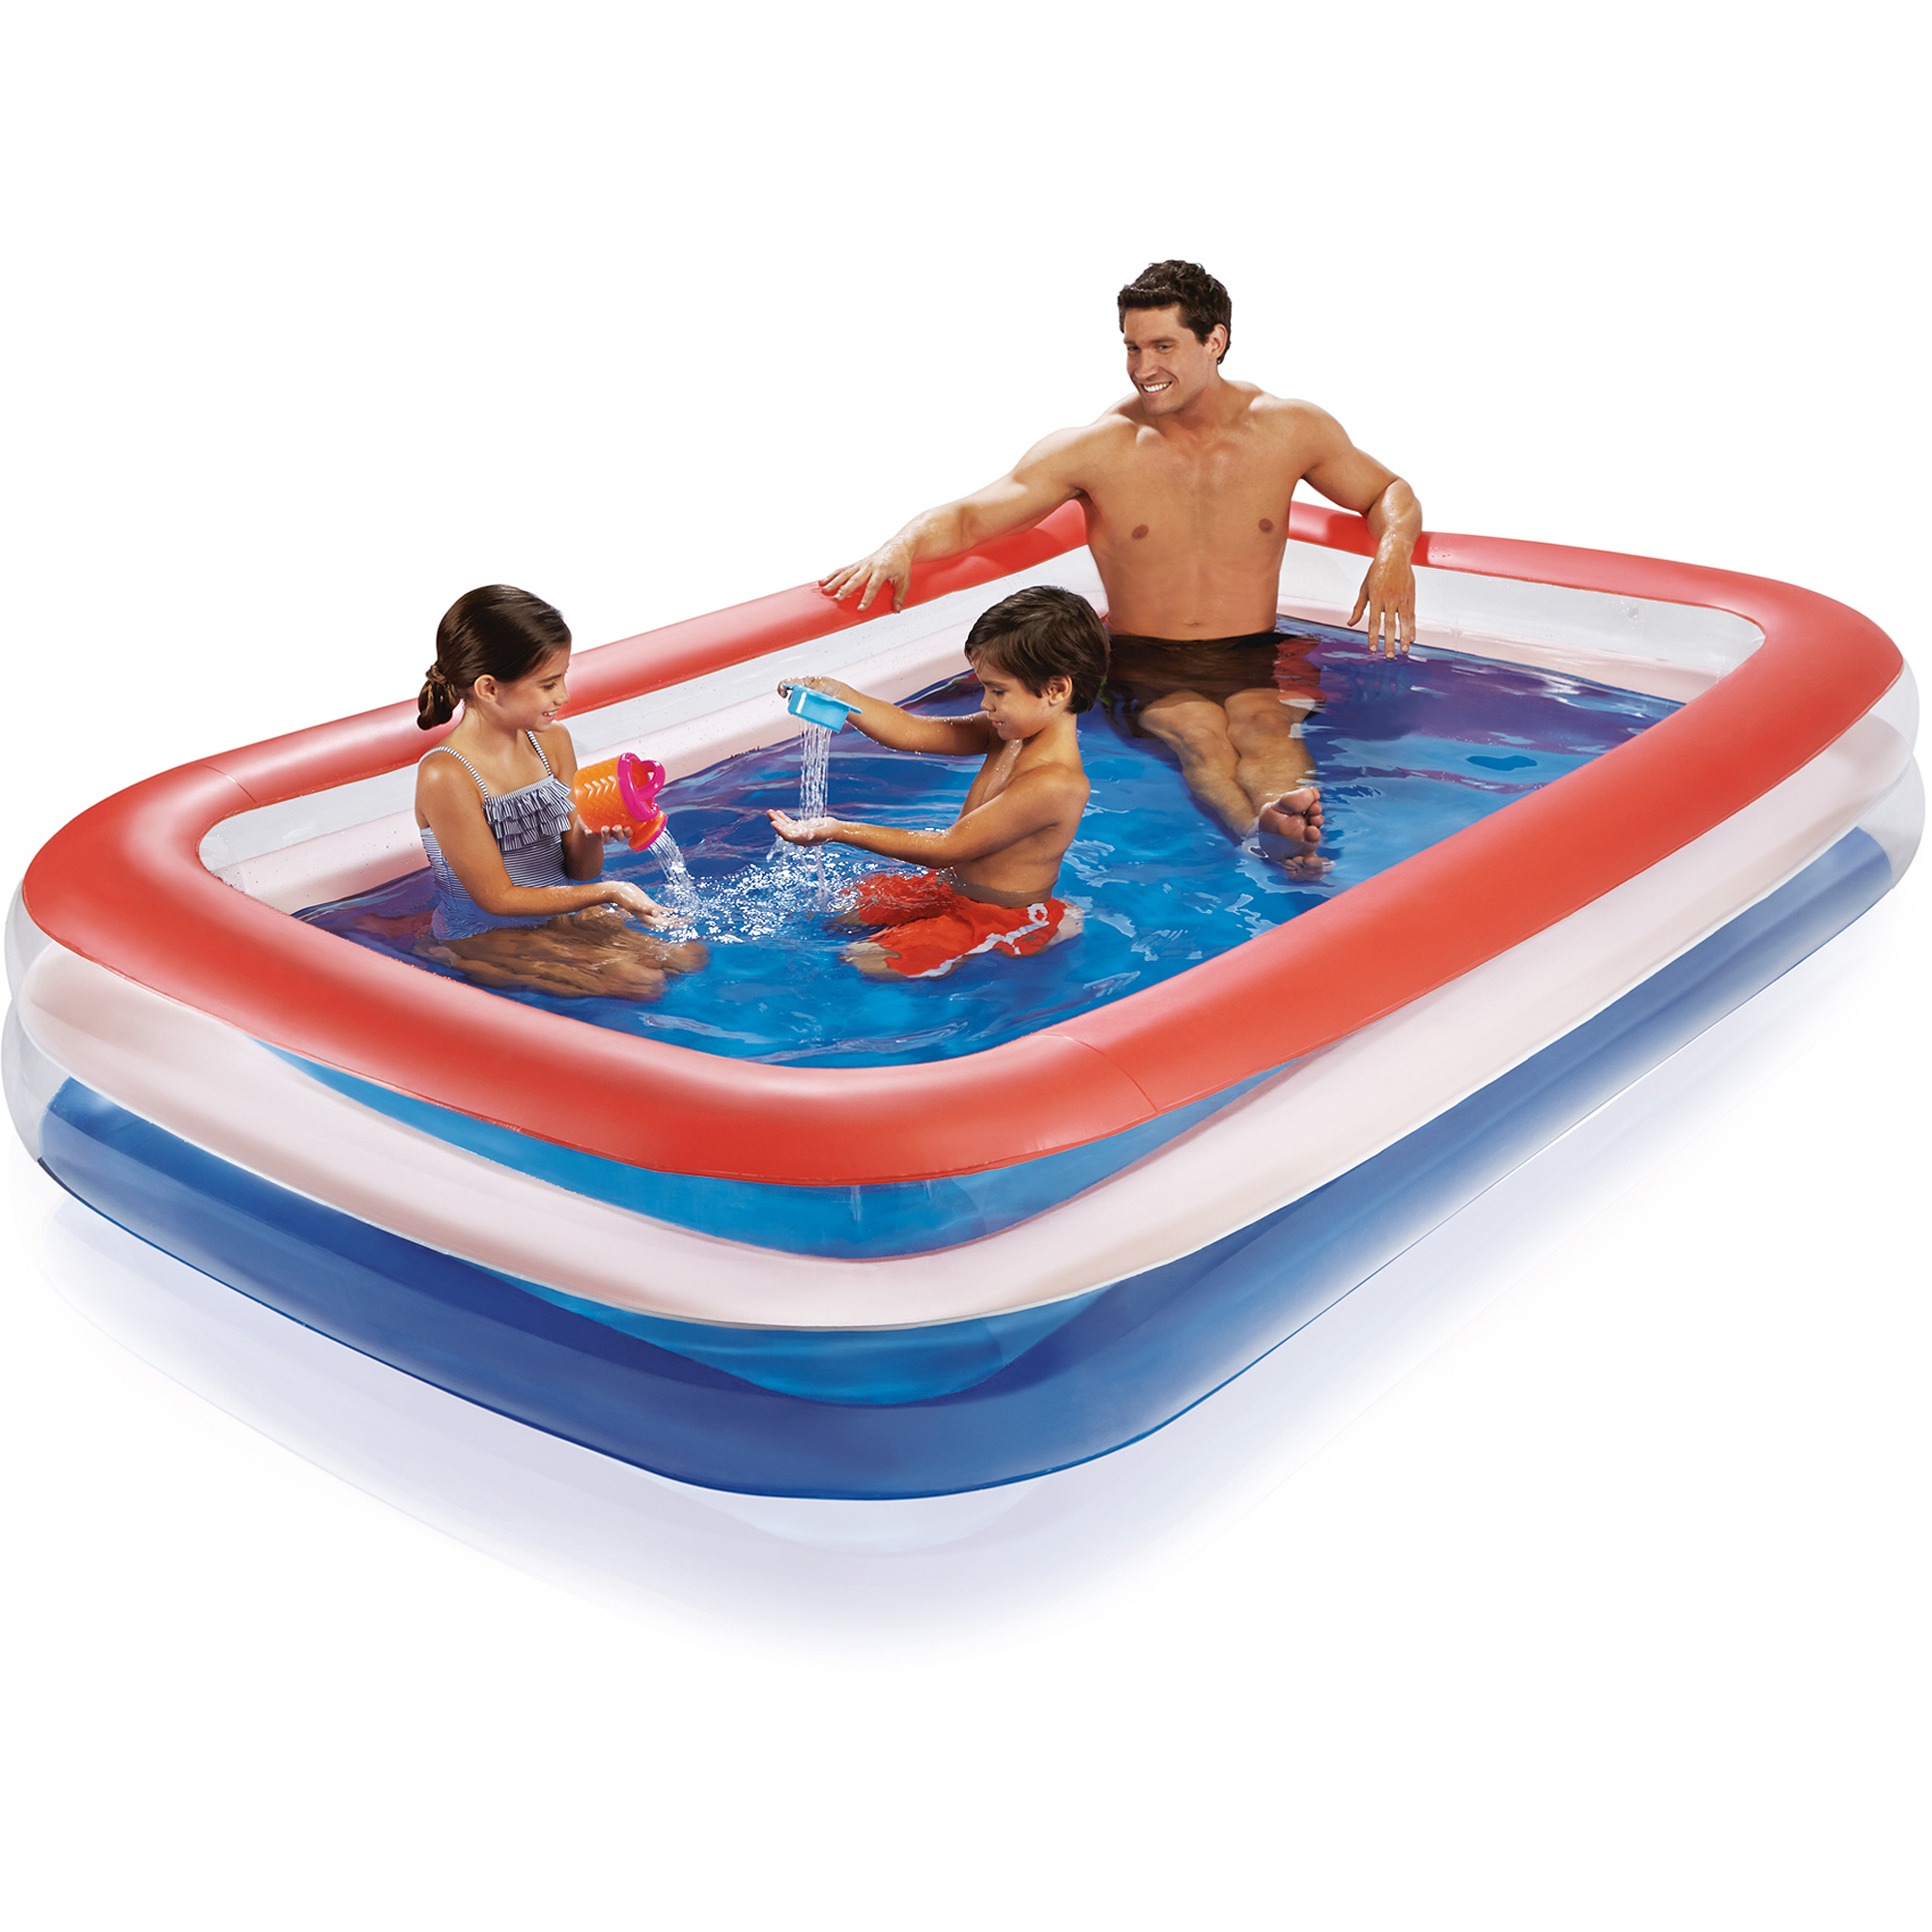 Play Day Color Transparent Family Pool, Red